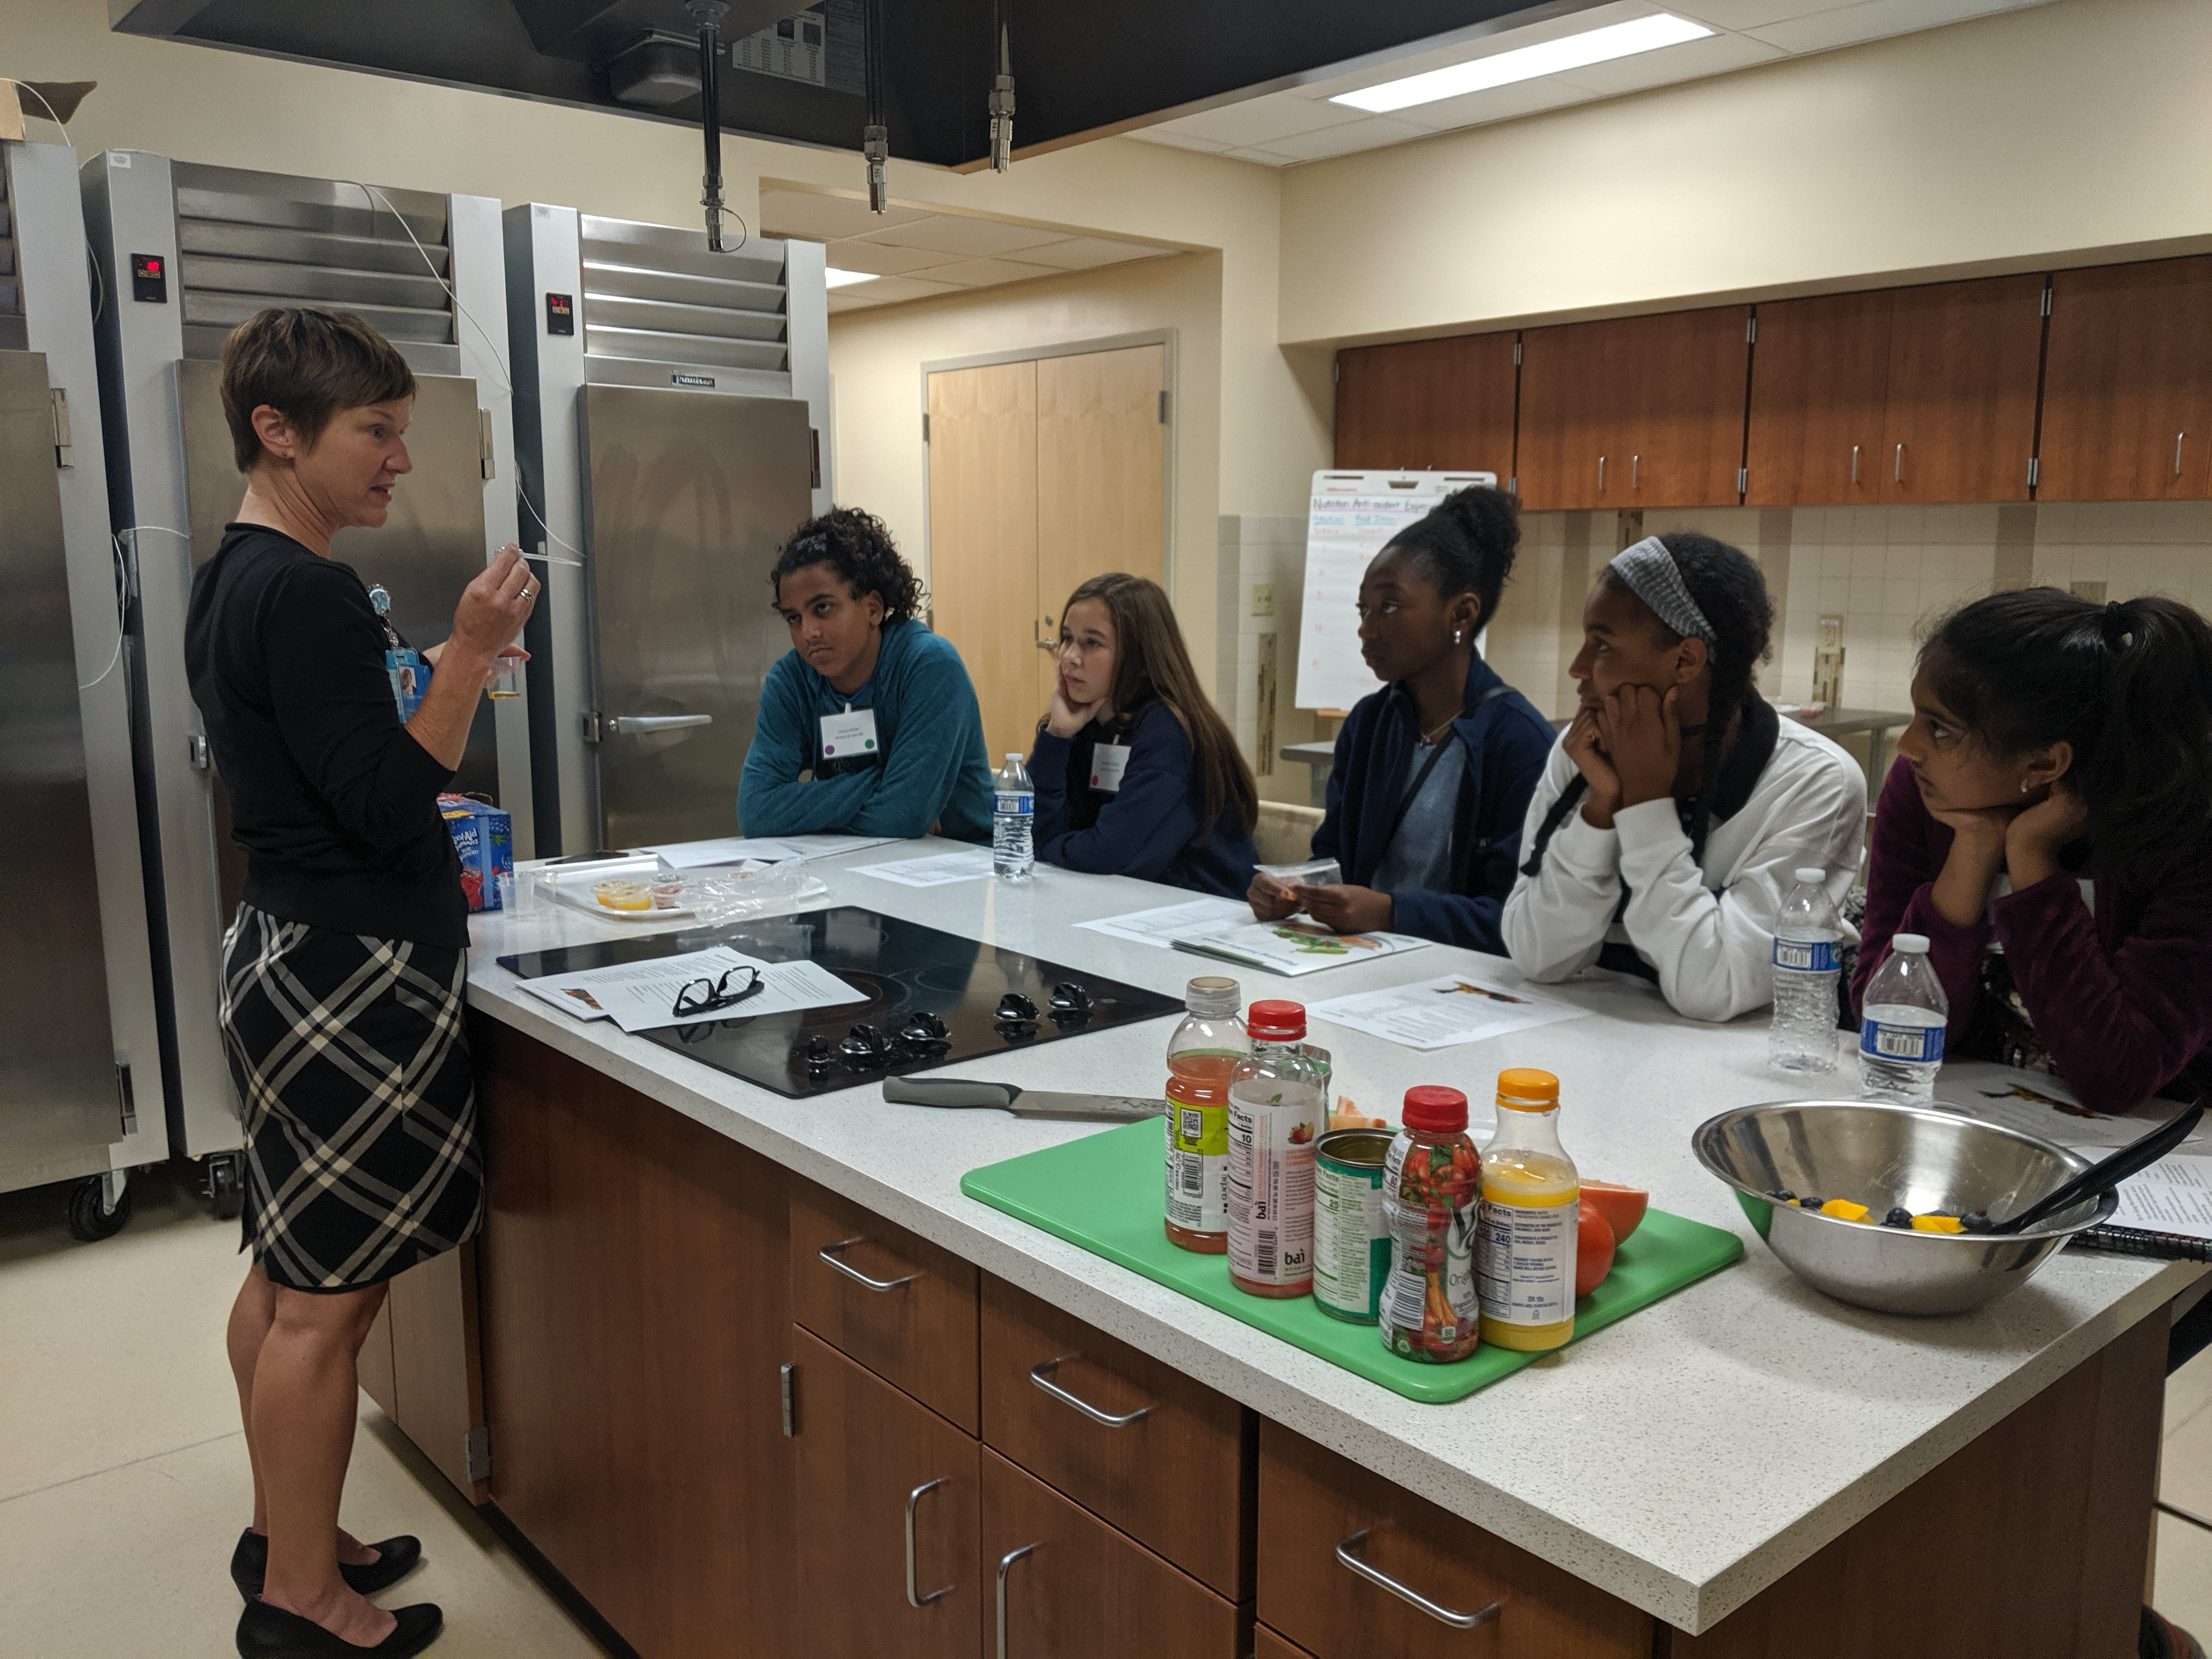 Students from the MSSS prepare for a nutrition experiment in the SRC metabolic kitchen led by Suzanne Summer.